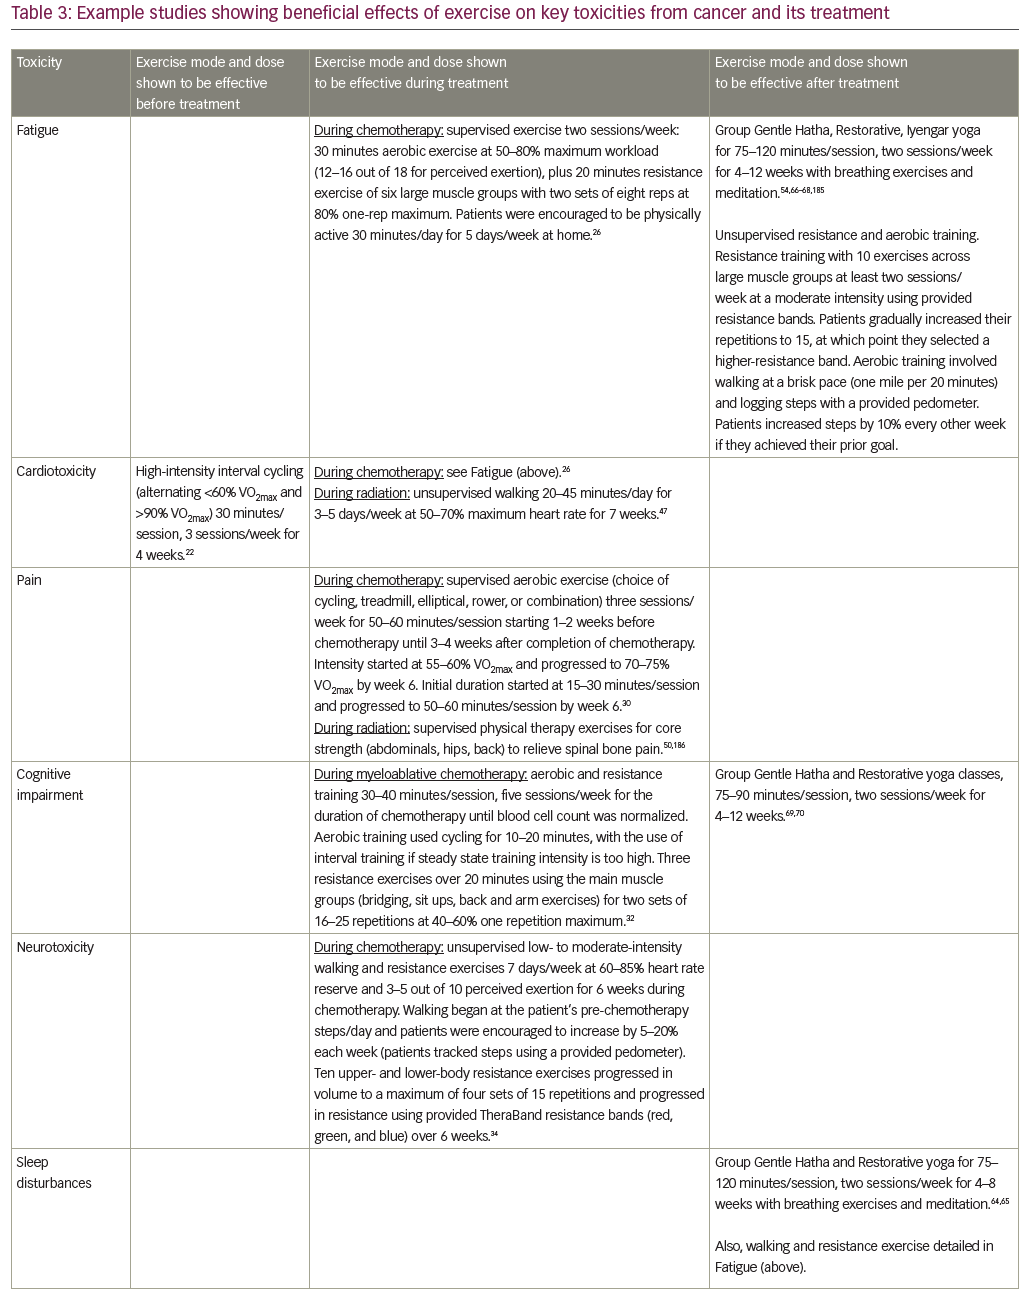 Table_3_Example_studies_showing_beneficial.png